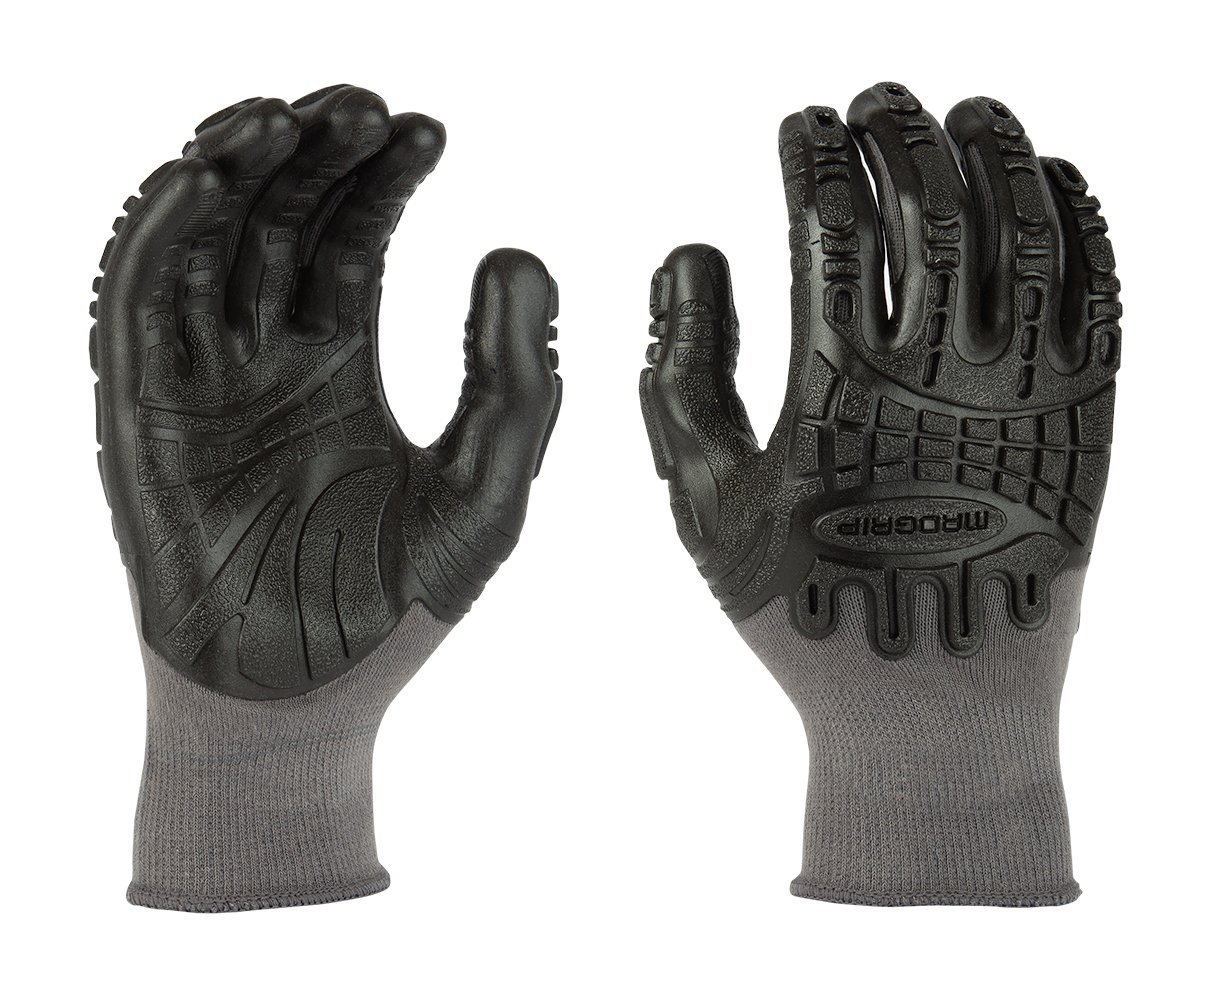 Lowes Work Gloves >> Details About Mad Grip F50 Thunderdome Impact Gloves Grey Black X Large